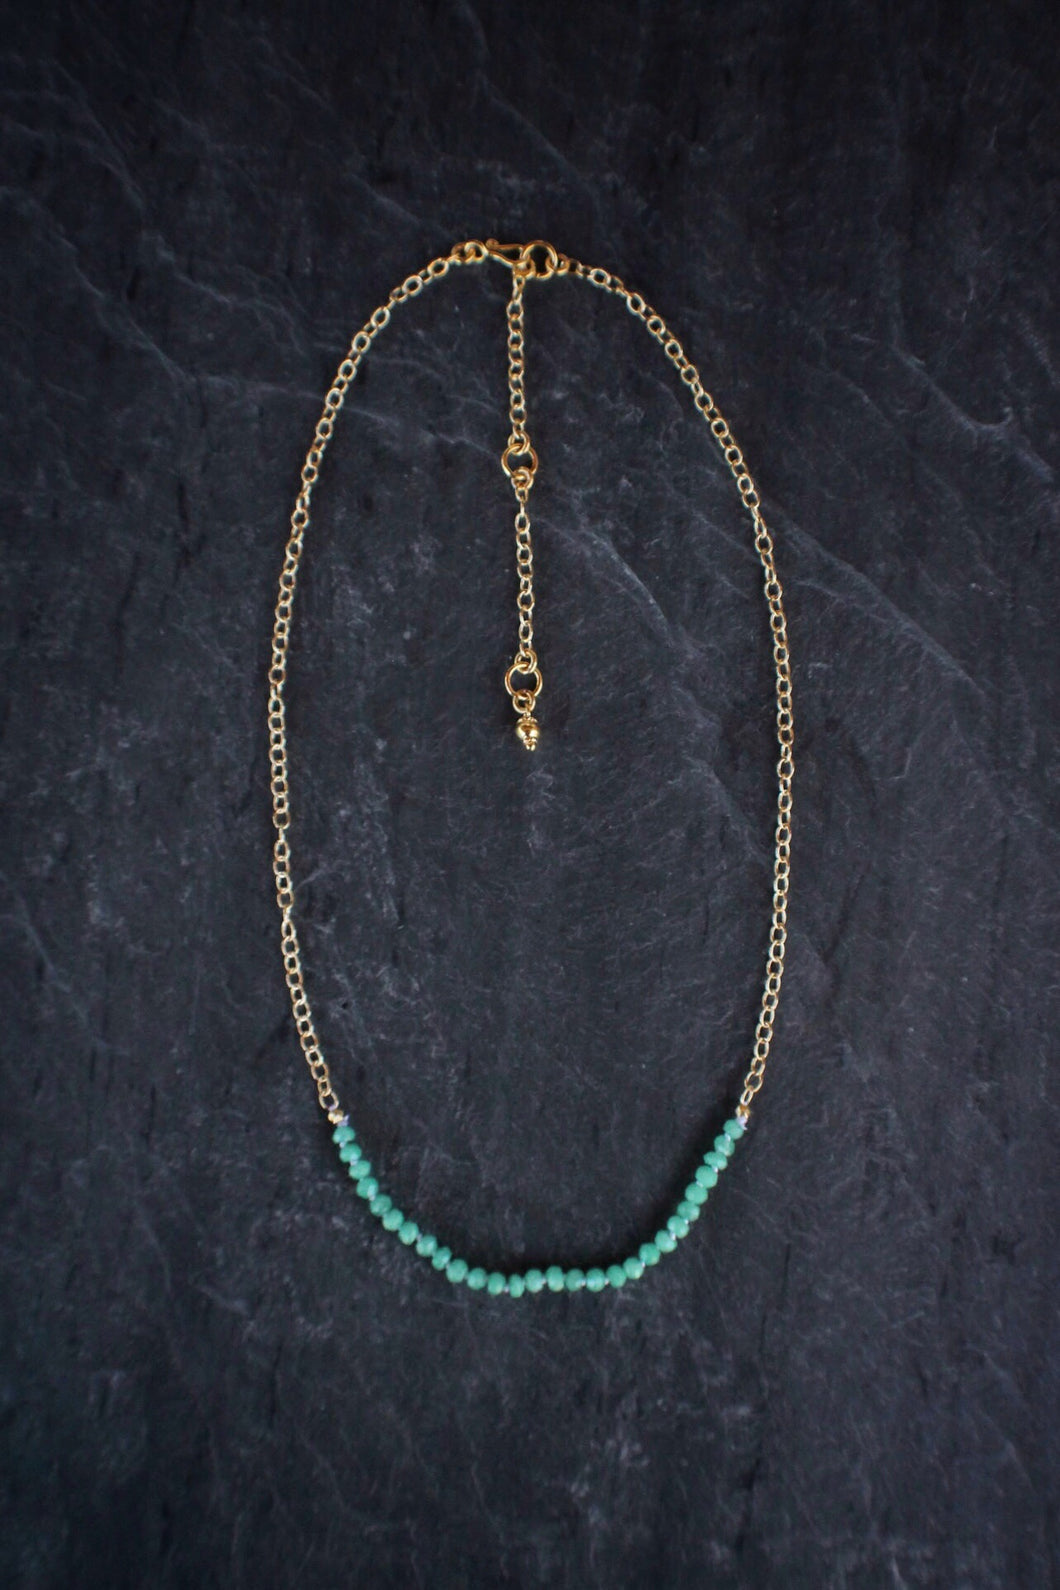 sea and stone jewelry Gemstone Bar Necklace in Chrysoprase